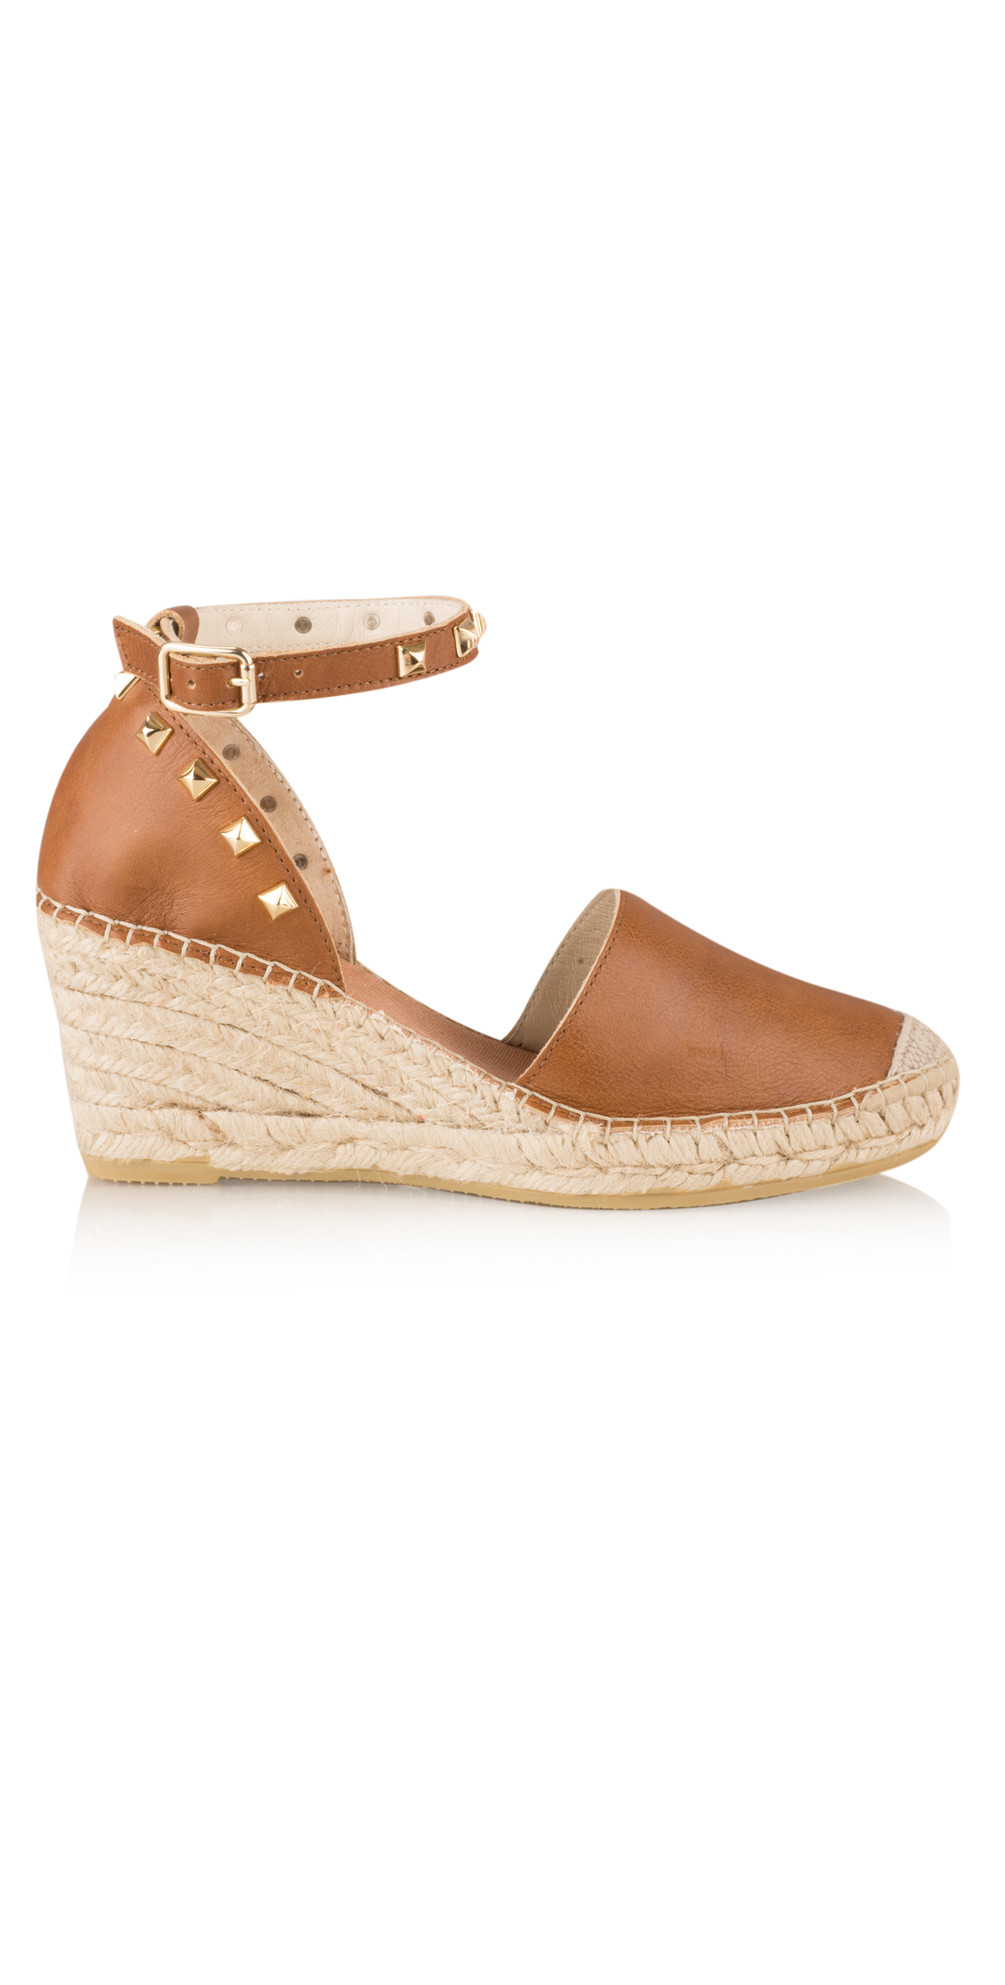 b0b9731349df Vidorreta Rock Stud Leather Wedge Espadrille in Cuero Natural